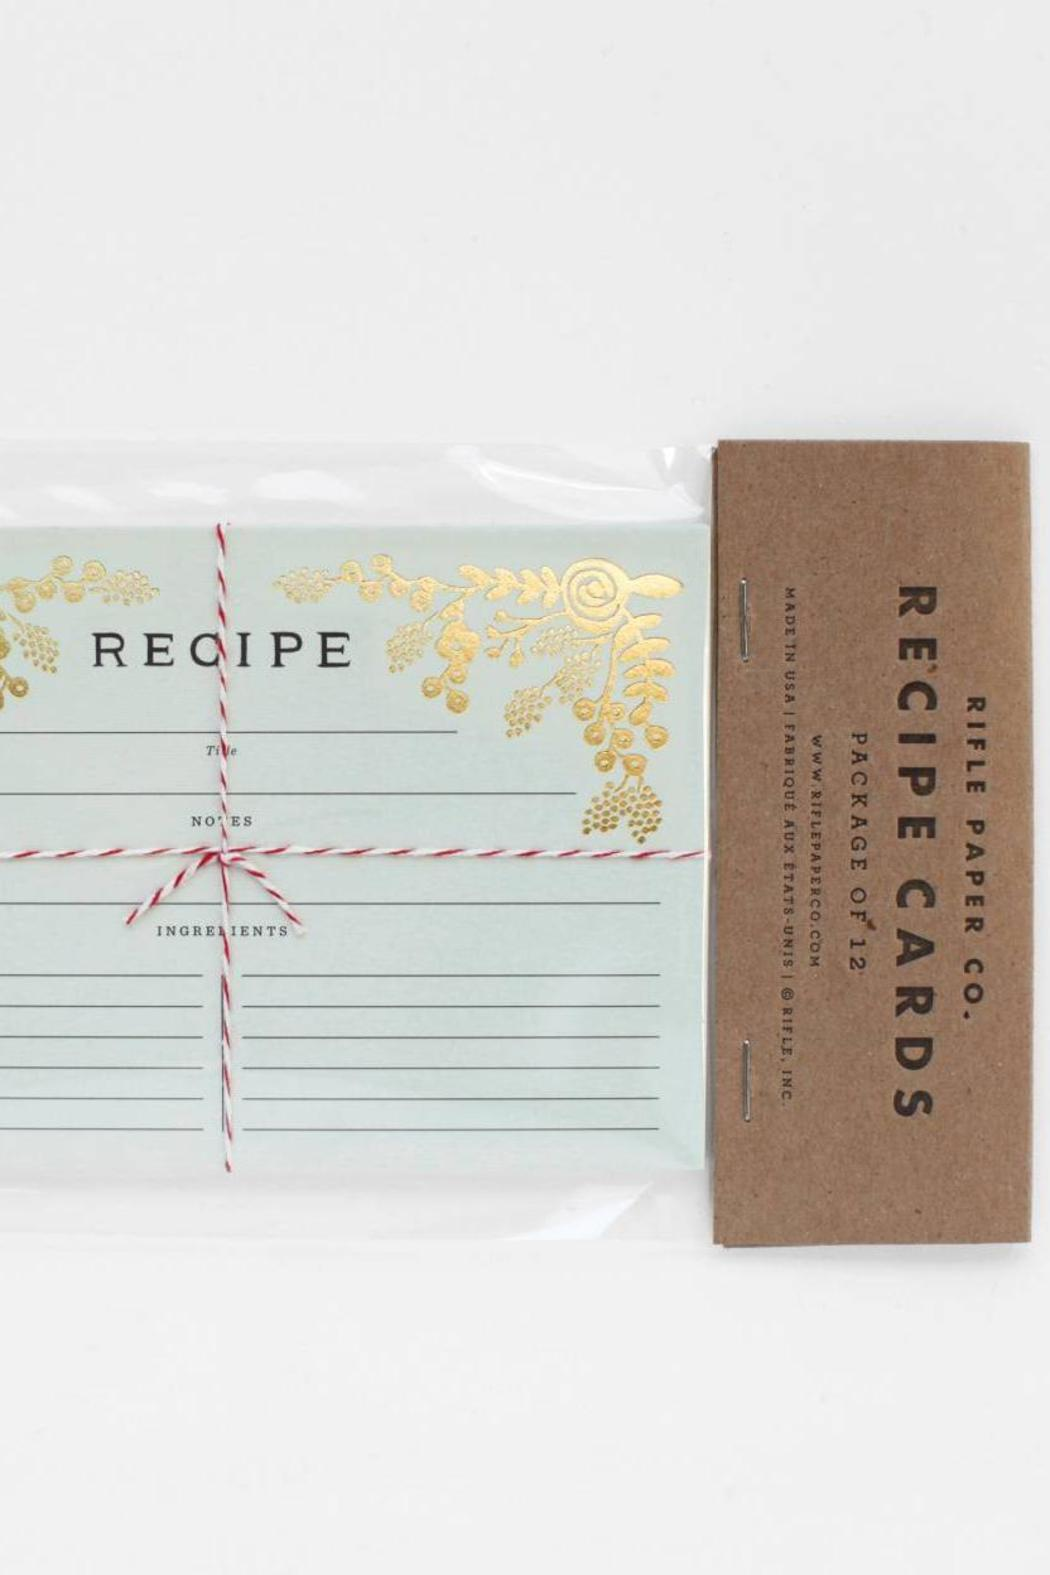 Rifle Paper Co Garden Recipe Cards From Austin By Lost